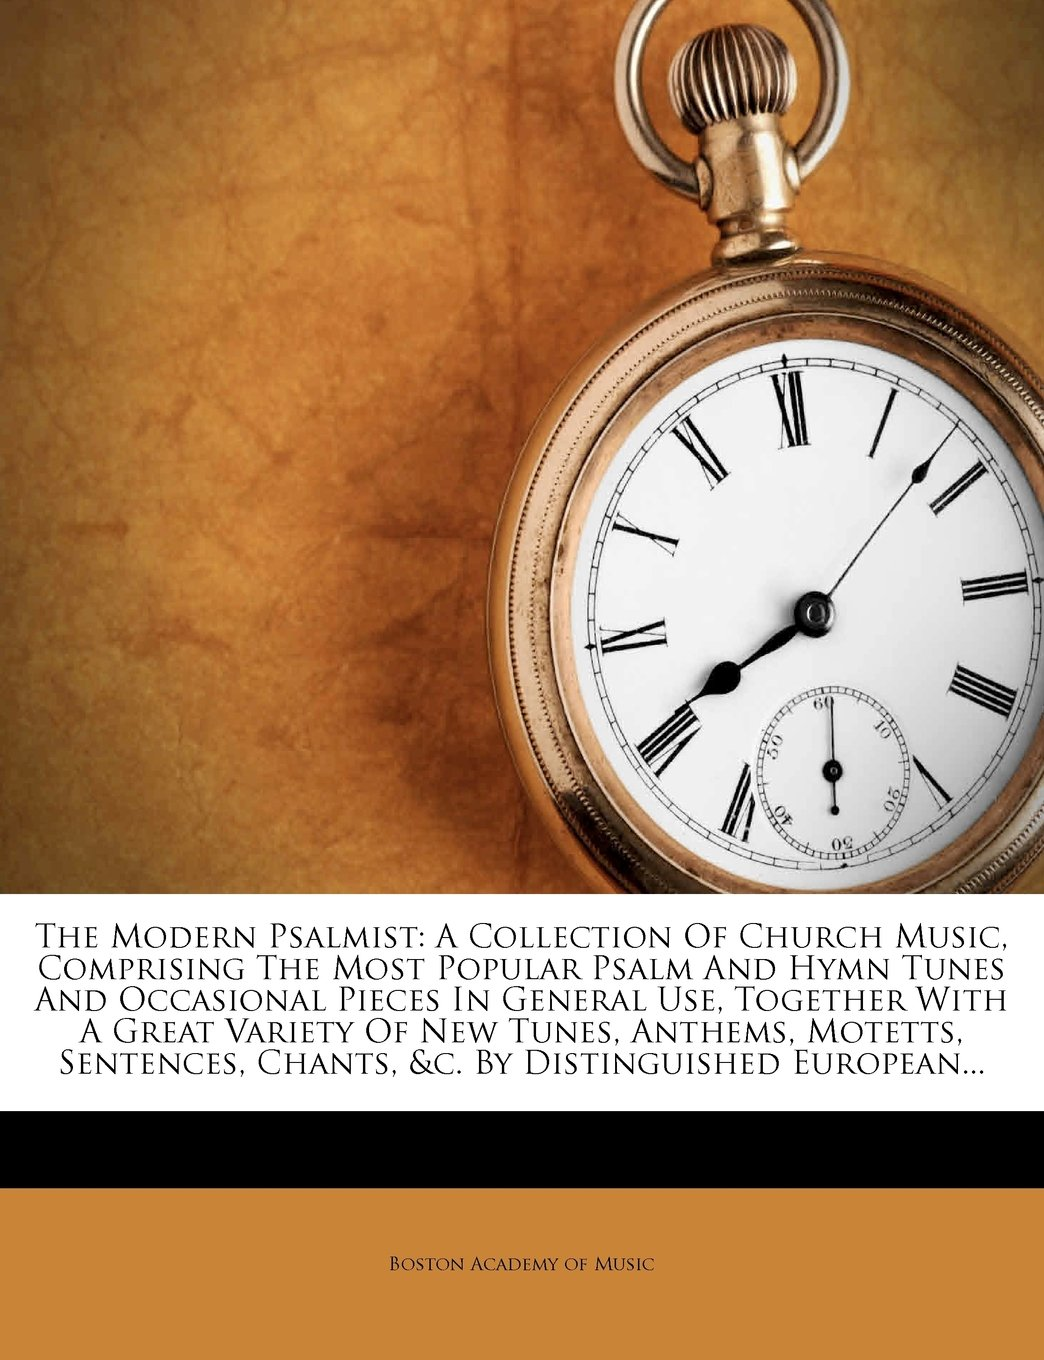 Download The Modern Psalmist: A Collection Of Church Music, Comprising The Most Popular Psalm And Hymn Tunes And Occasional Pieces In General Use, Together ... Chants, &c. By Distinguished European... PDF